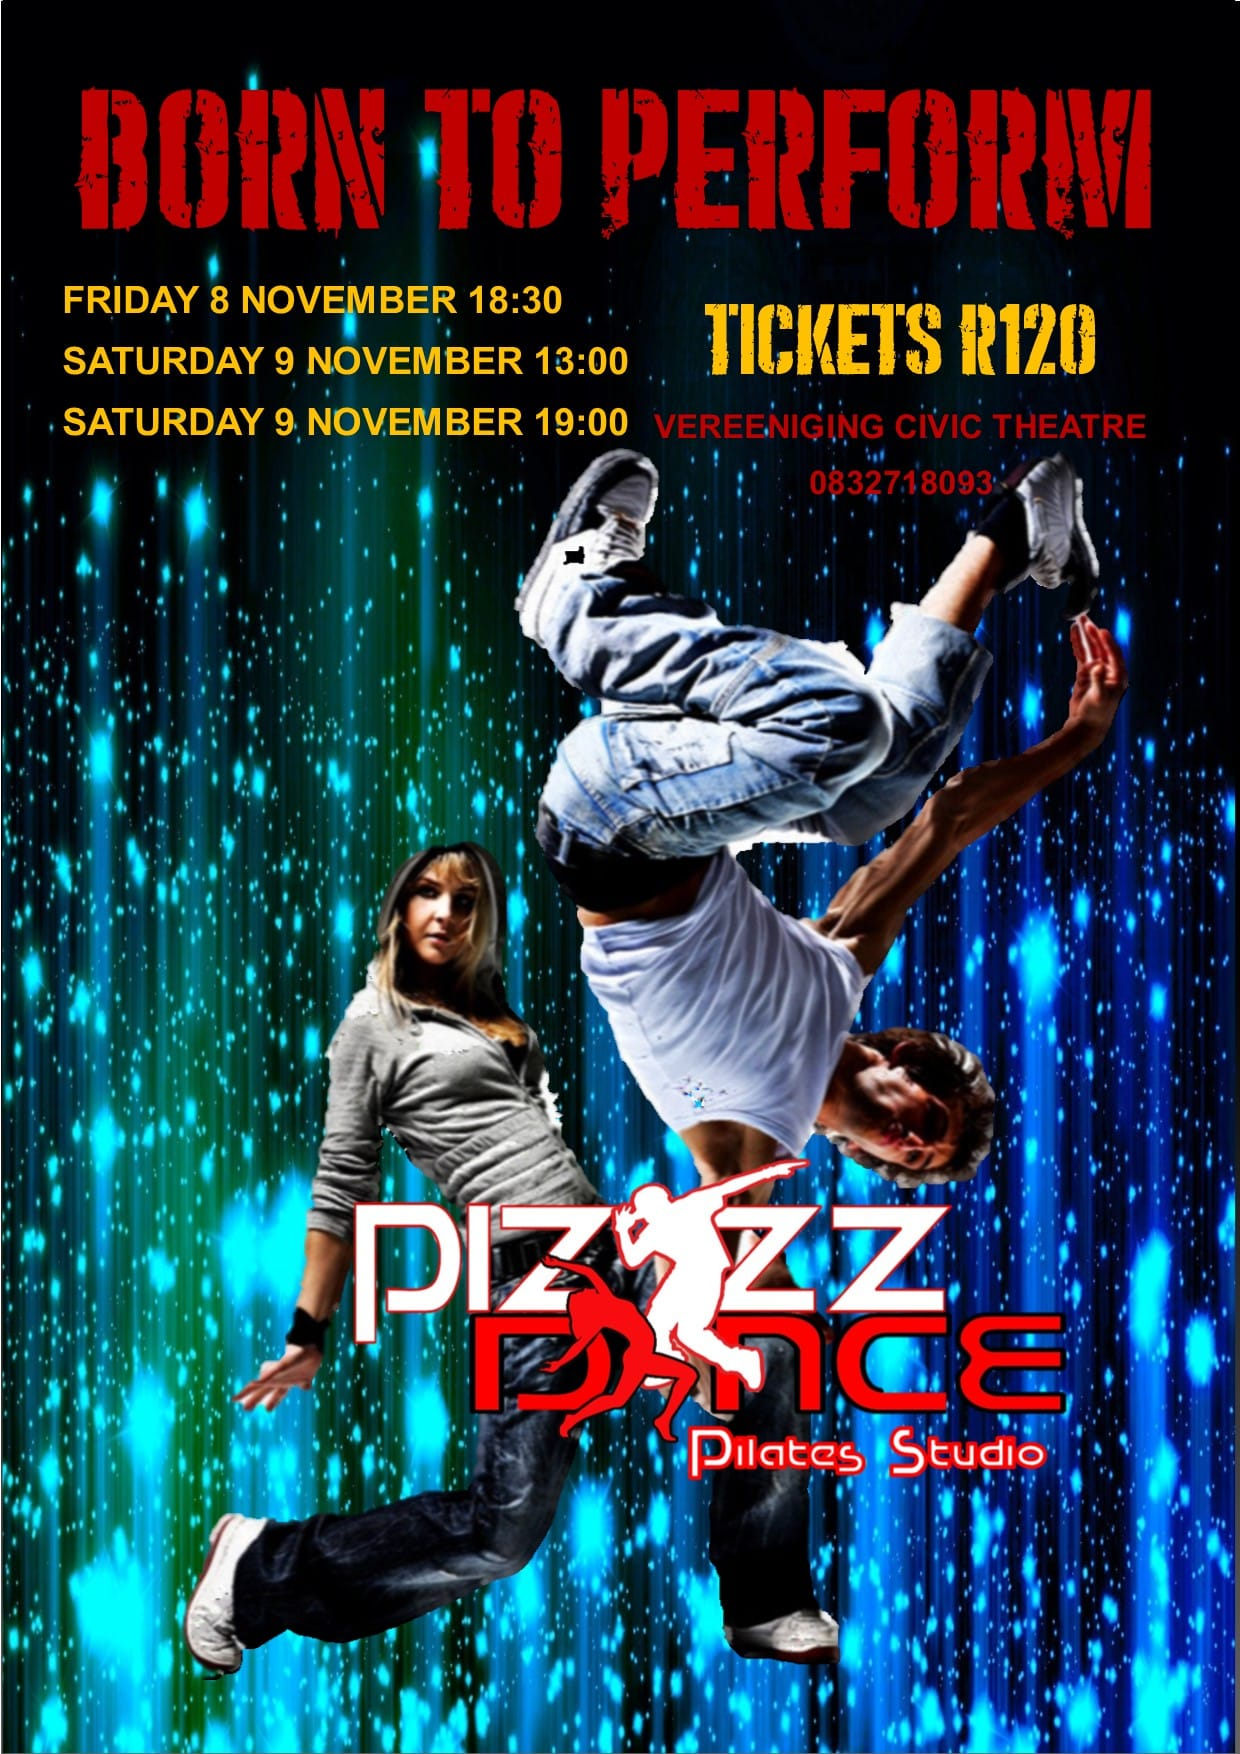 Born To Perform ( Pizazz dance studio)